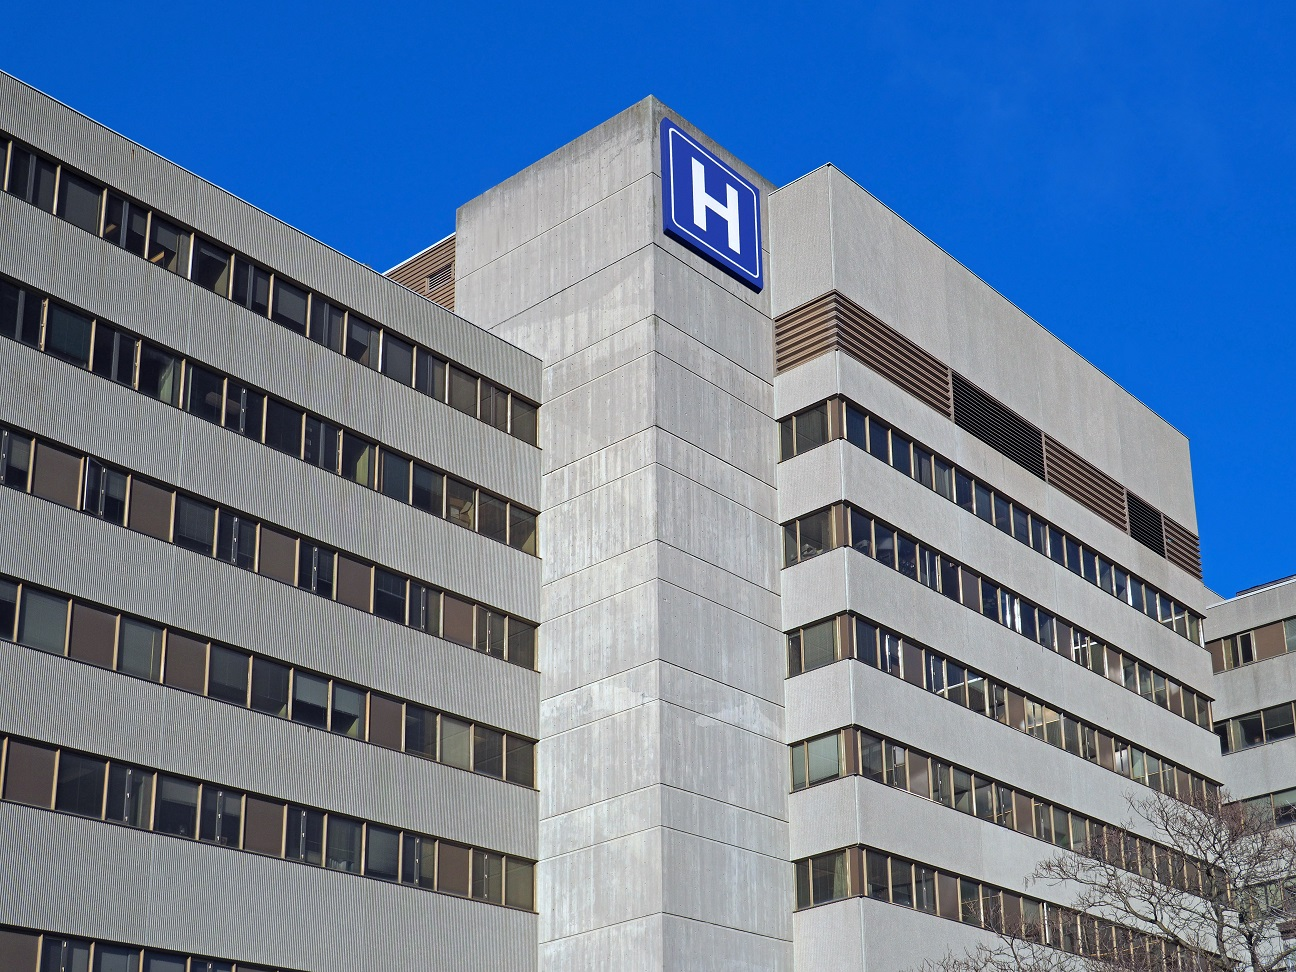 Worker Safety in Hospitals